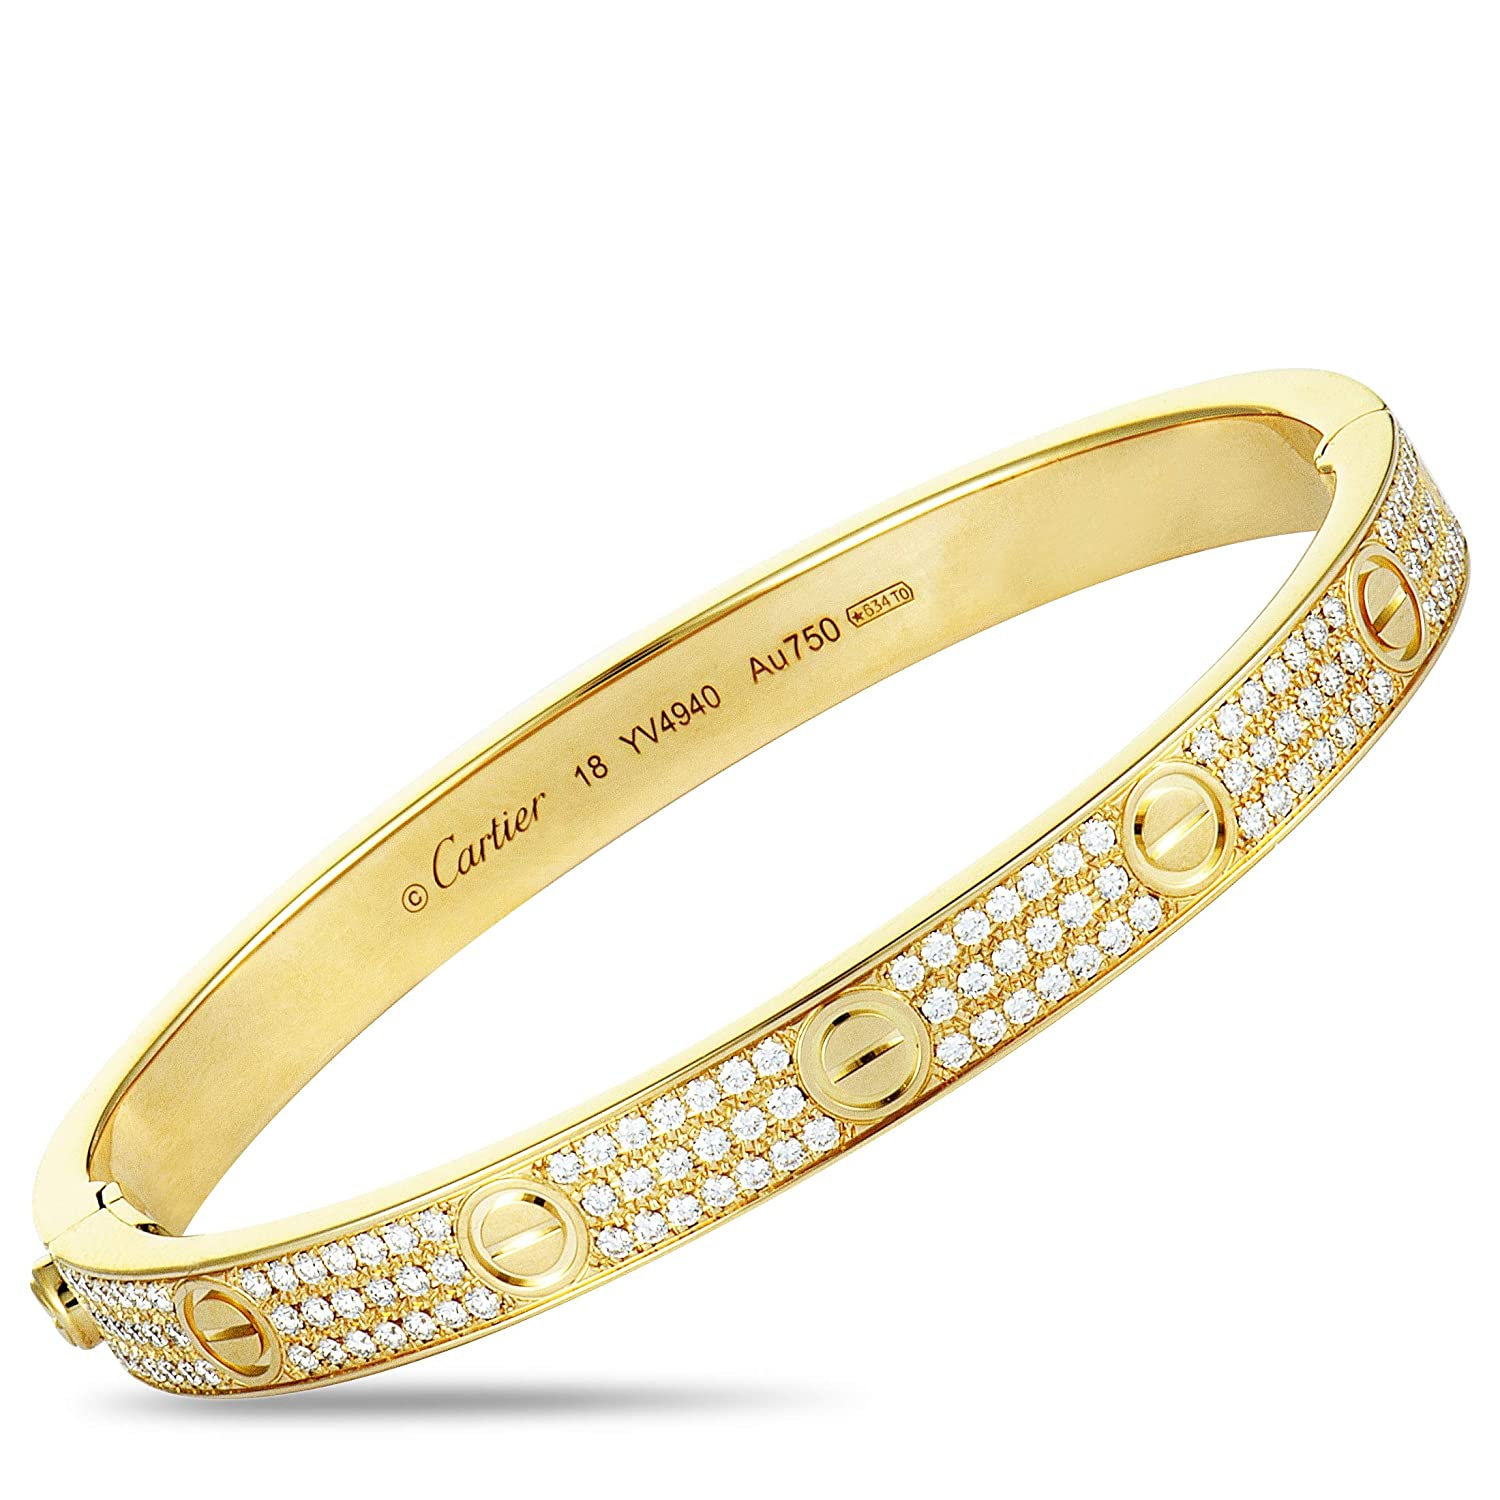 257fd45f440d0 Amazon.com: Luxury Bazaar Cartier Love 18K Yellow Gold Diamond ...